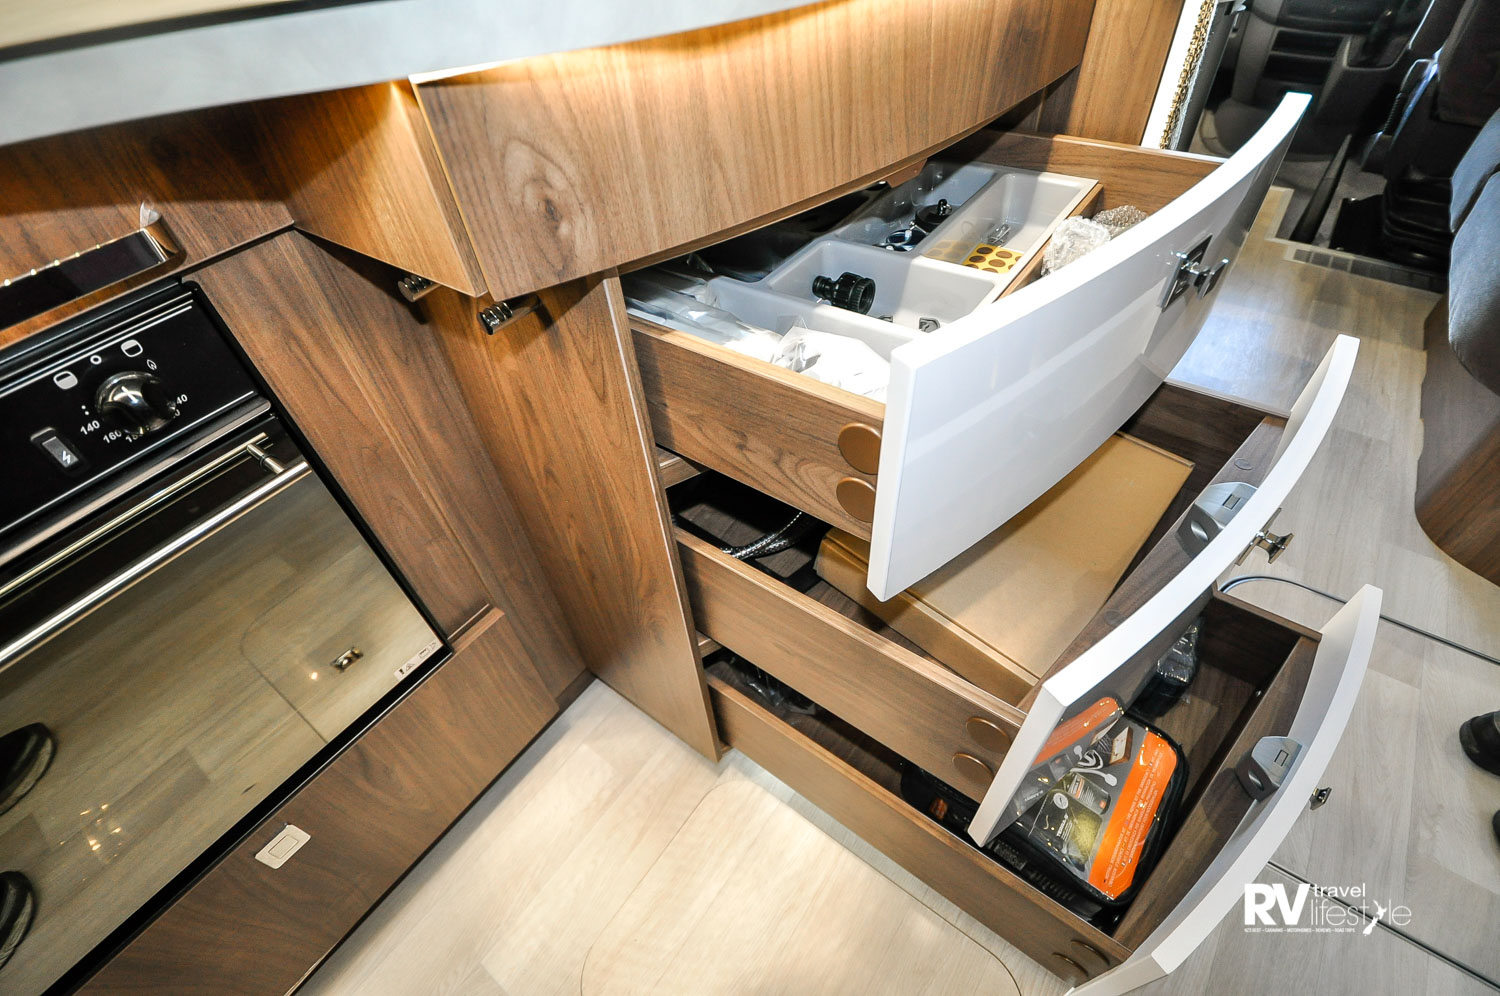 These drawers have real depth (front to back) great storage, and the push-button locks are good quality